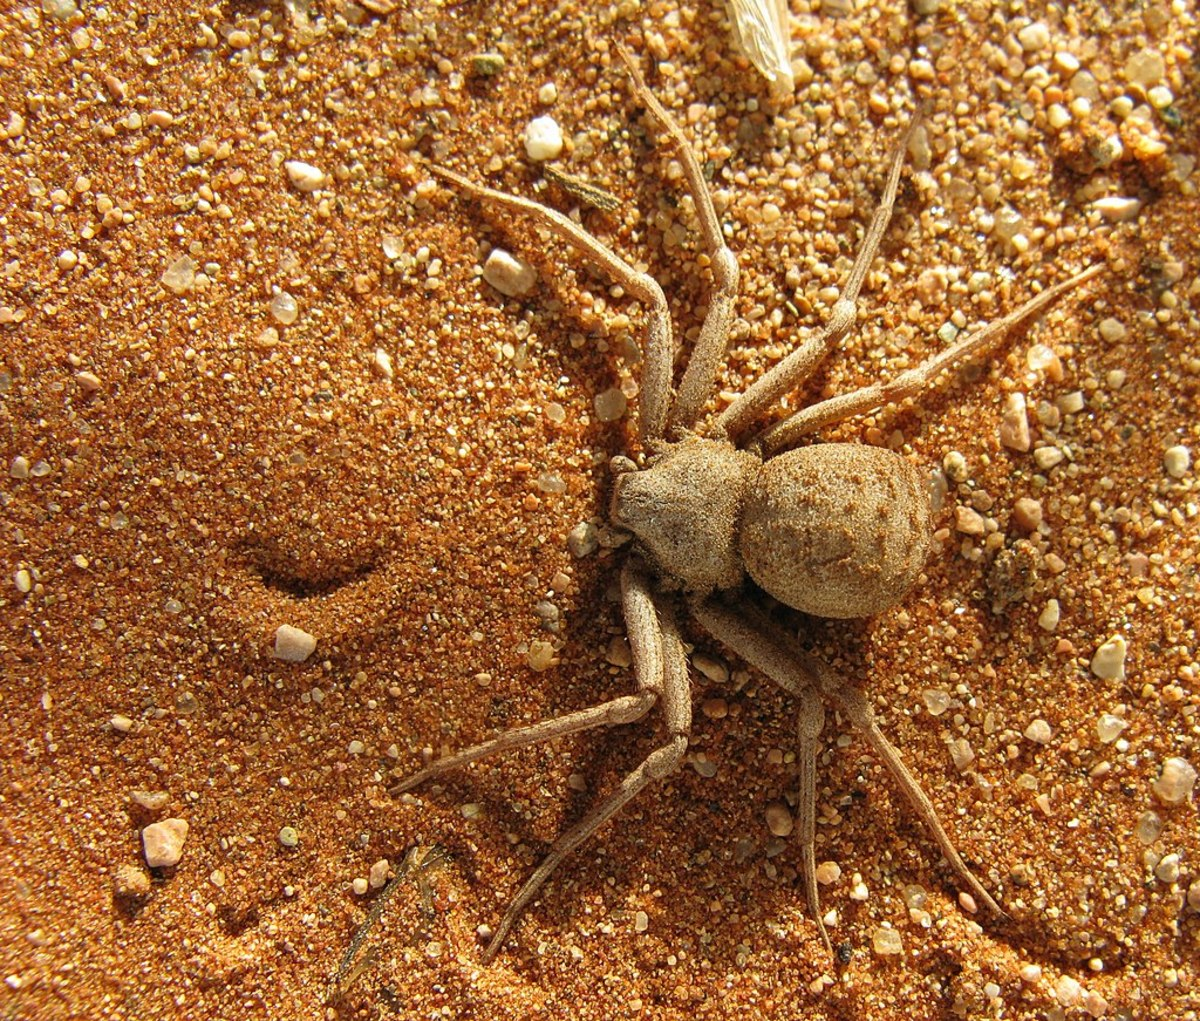 The highly-venomous Six-Eyed Sand Spider; the deadliest spider in the world.